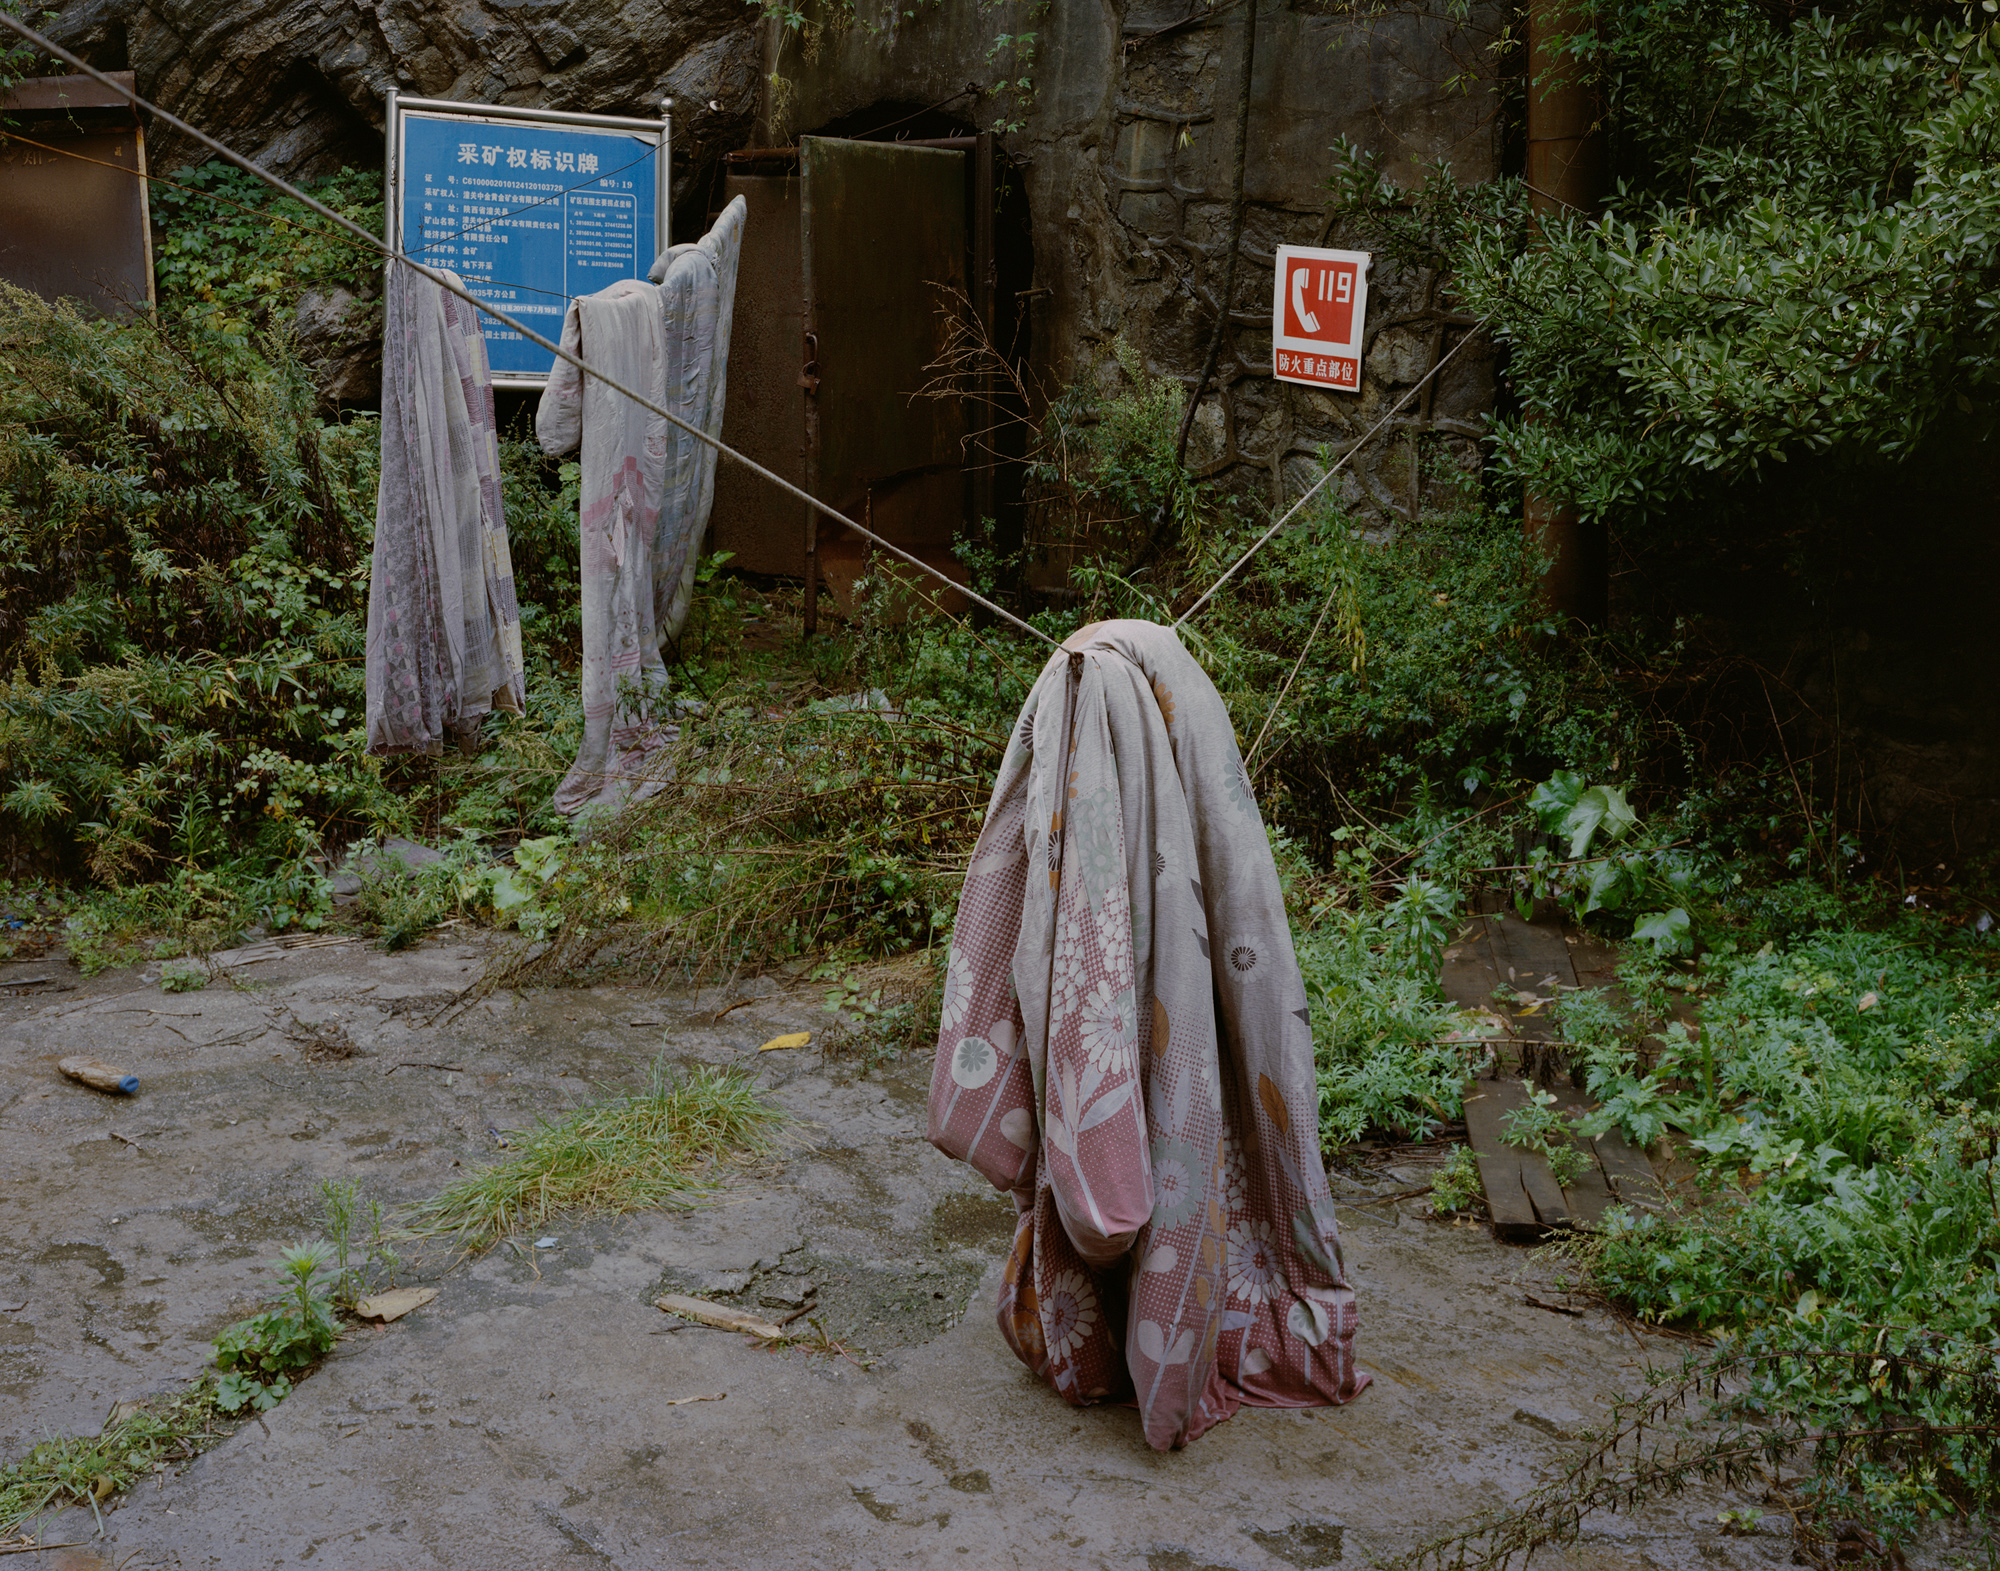 Outside an abandoned gold mine, unclaimed quilts hang on a clothesline, in Tongguan.